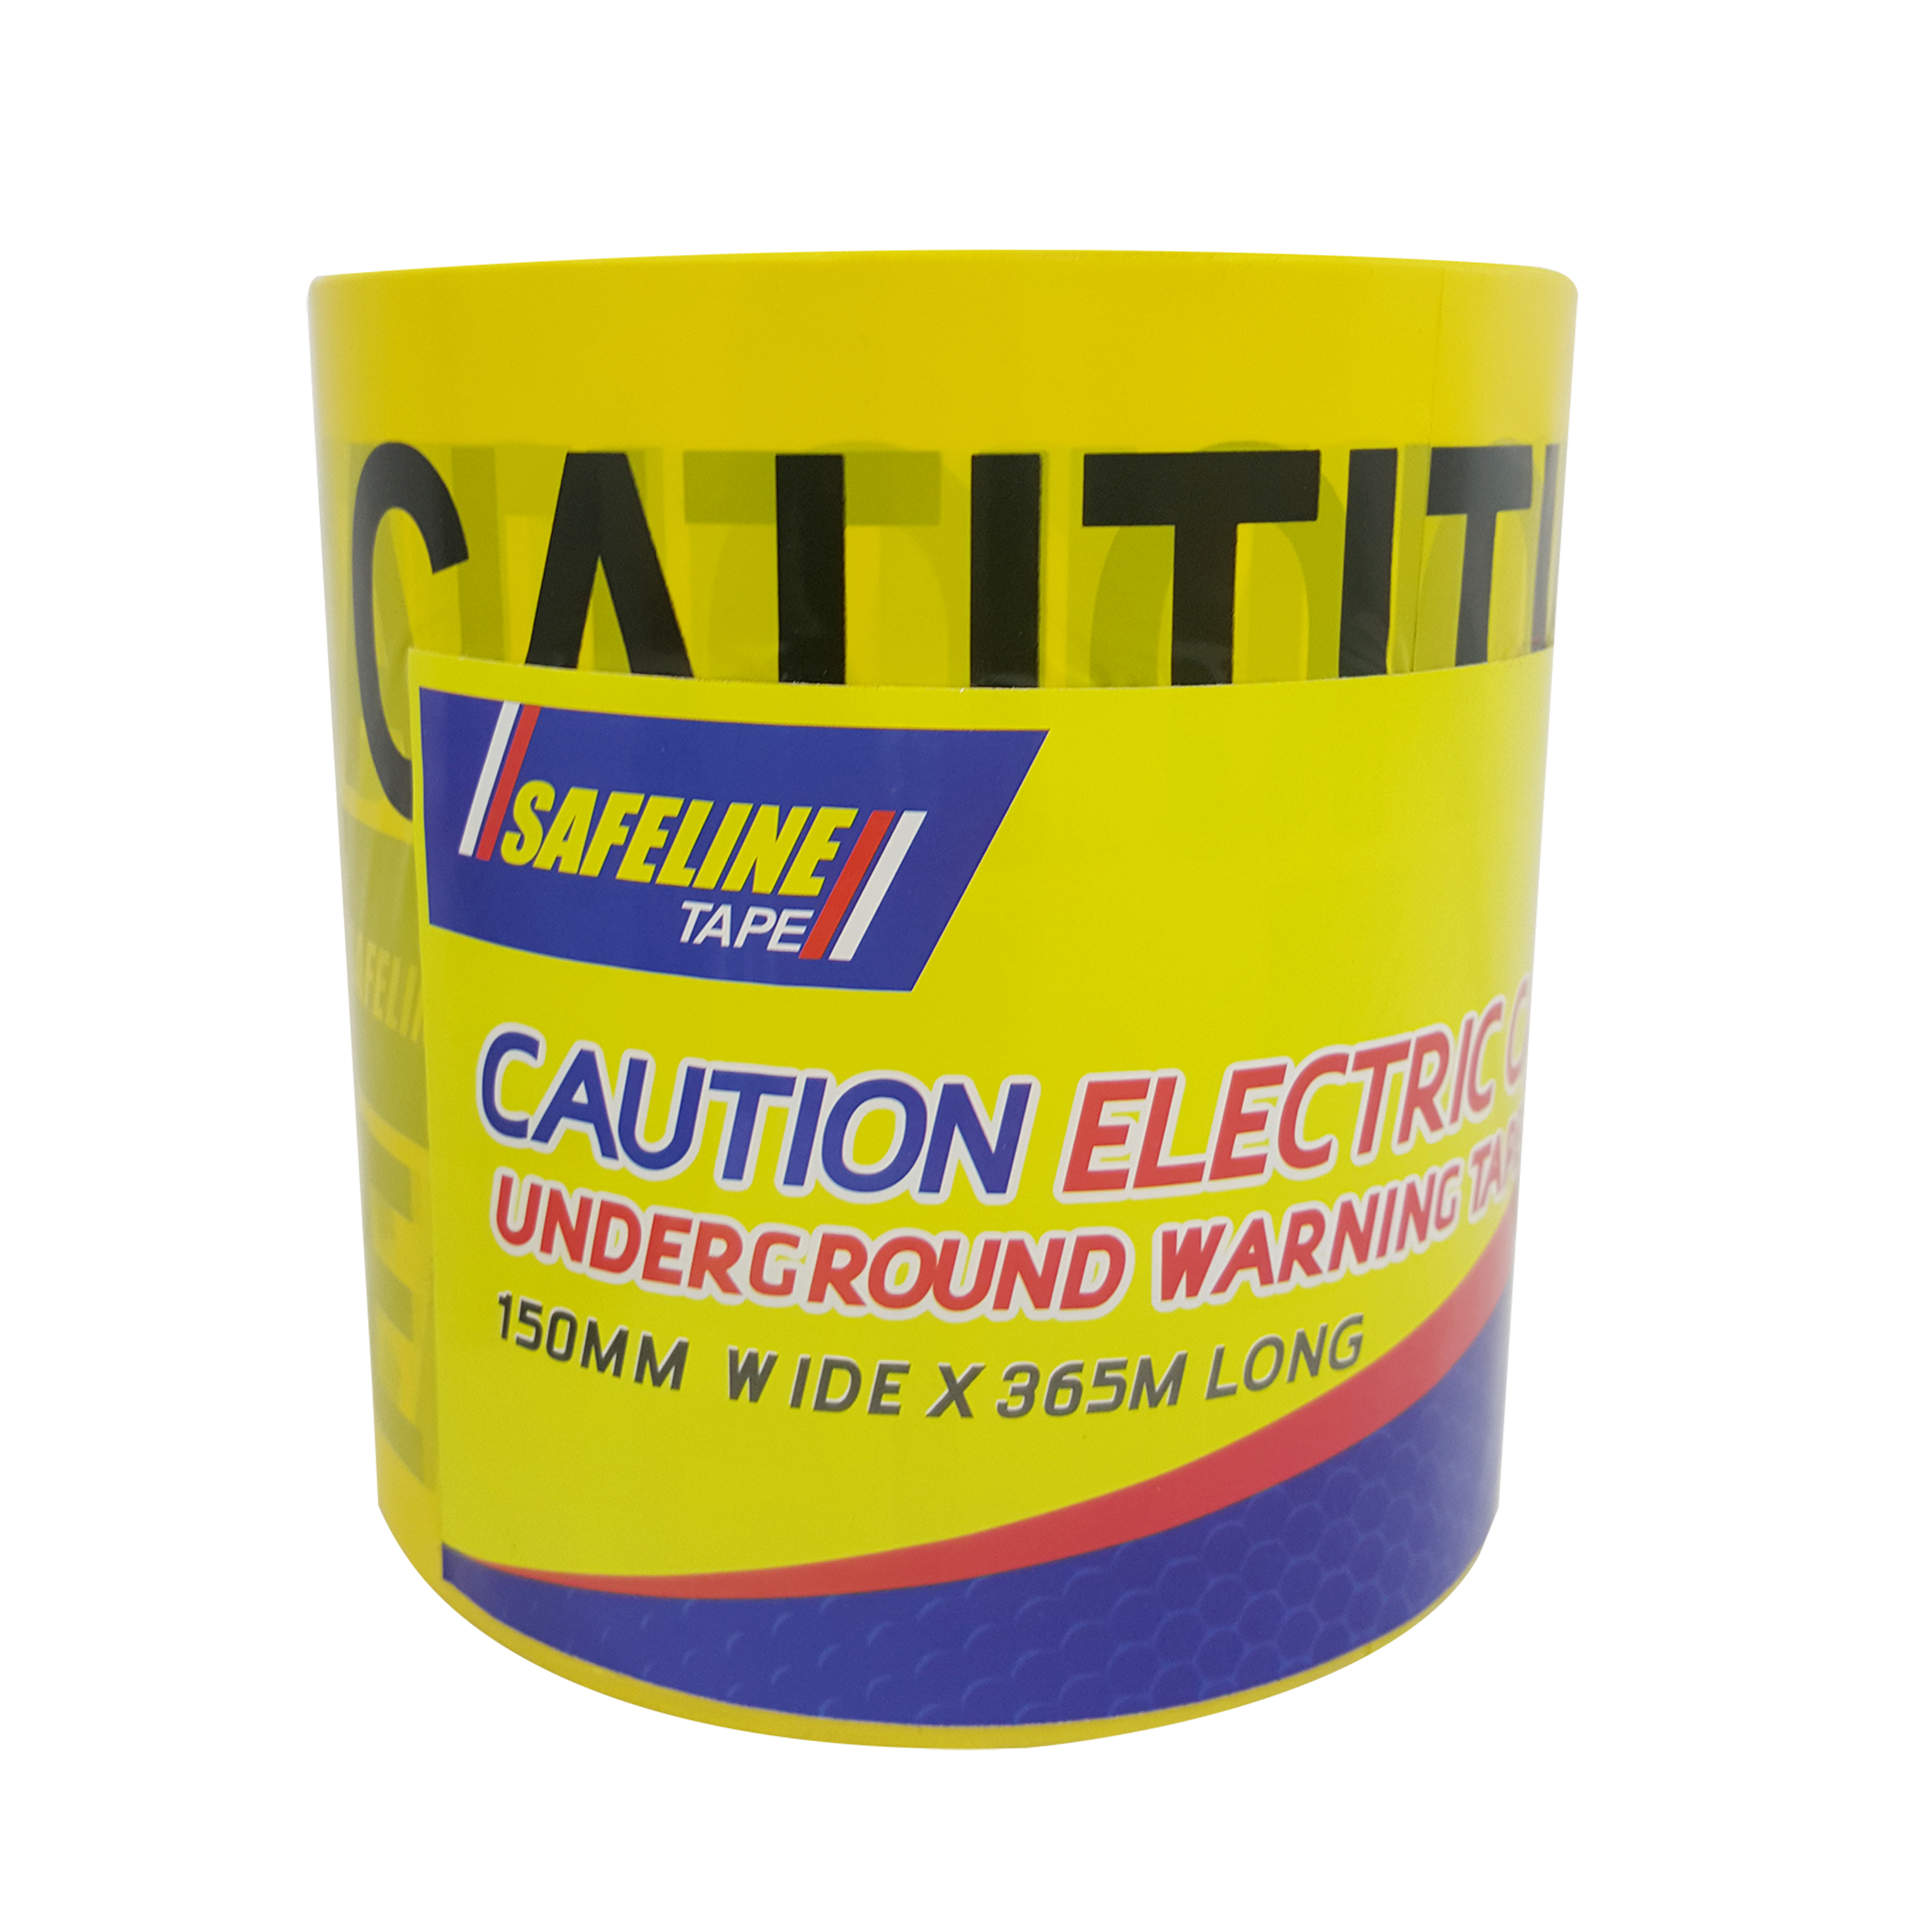 Electrical Cable Warning Tape  150mm x 365m